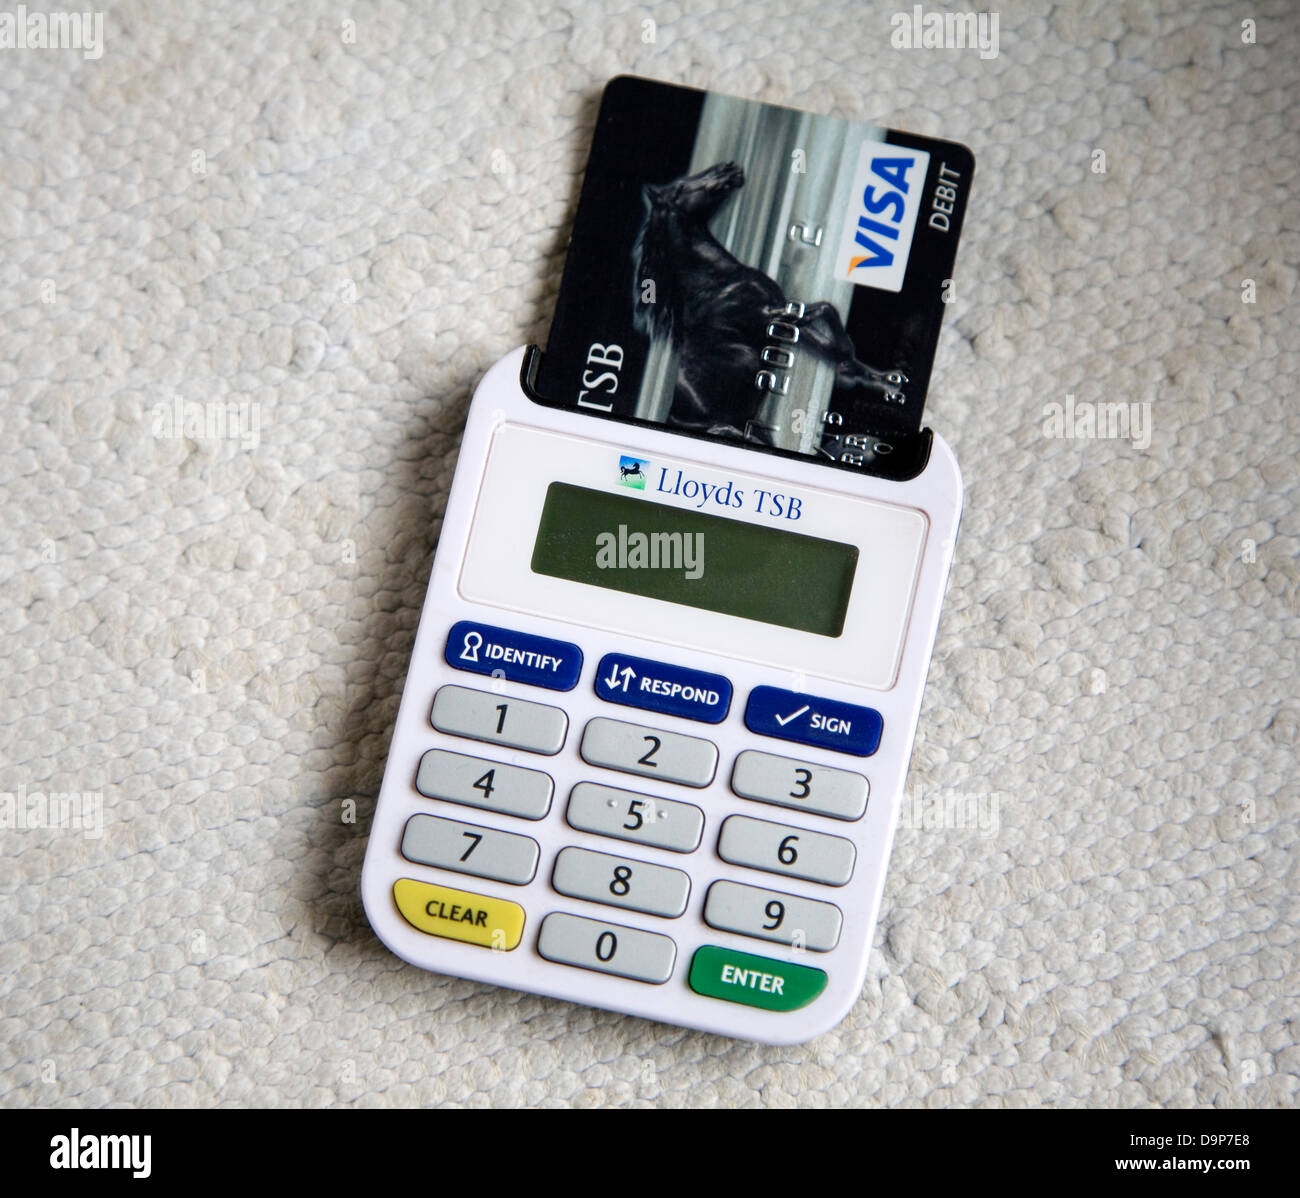 Ezio Lloyds Bank Card Reader Online Banking Security Device Stock Photo Alamy